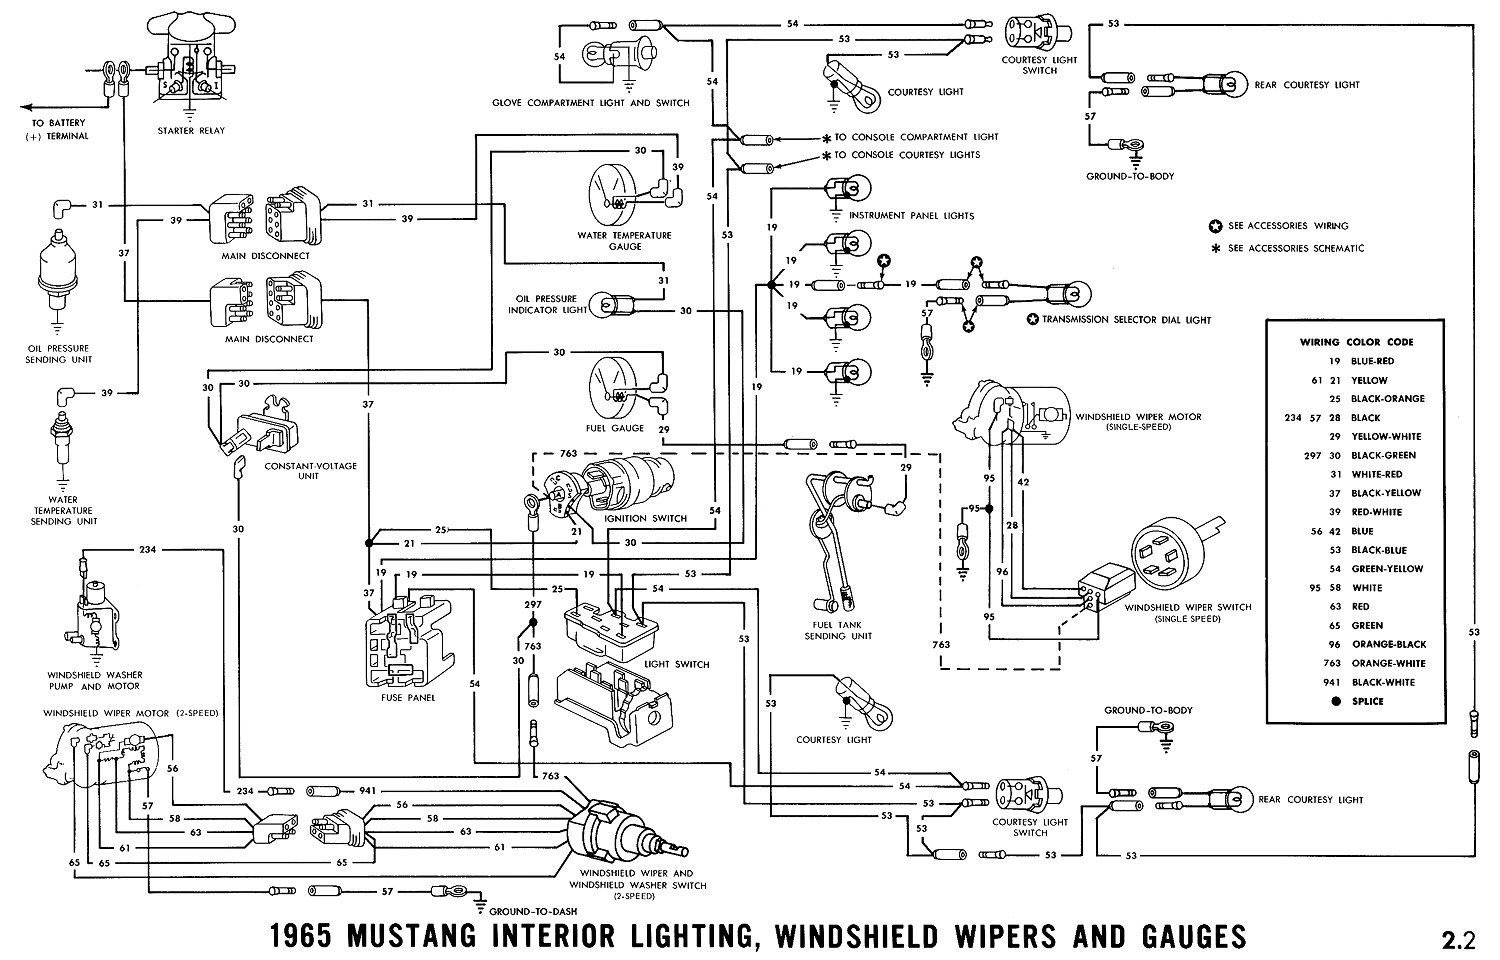 1965 Mustang Wiring Diagrams Average Joe Restoration 1969 Mustang Wiring  Diagram 65 Mustang Radio Wiring Diagram